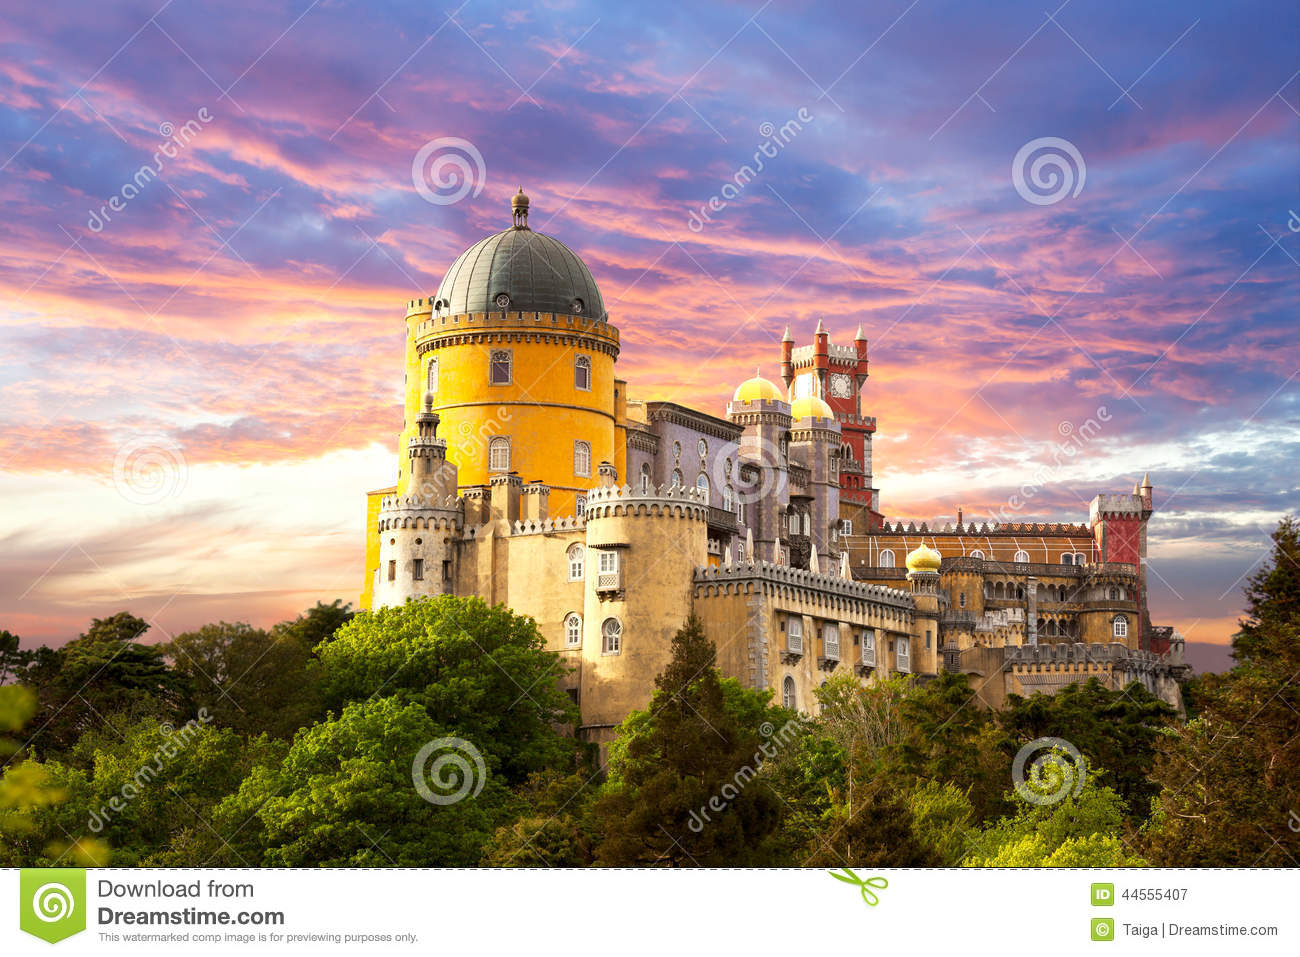 Fairy Palace against sunset sky - Sintra, Portugal, Europe